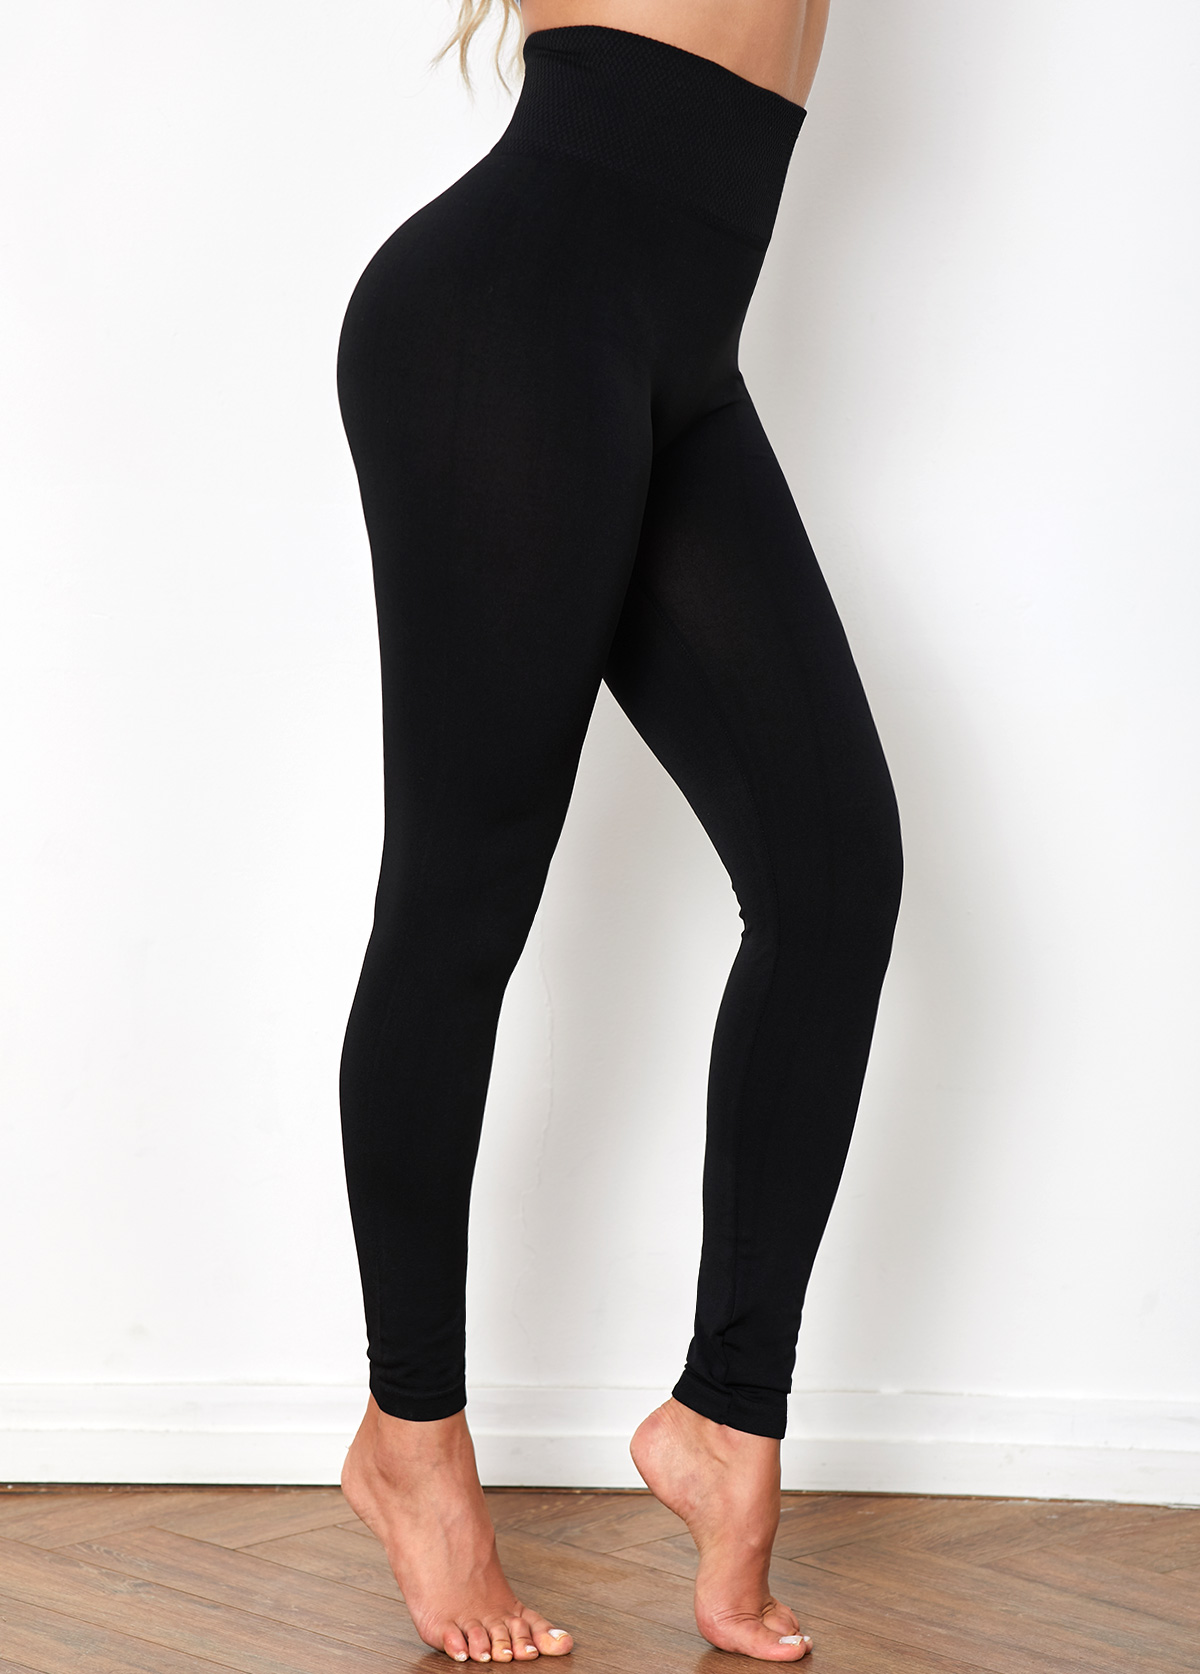 Black High Waist Super Elastic Legging